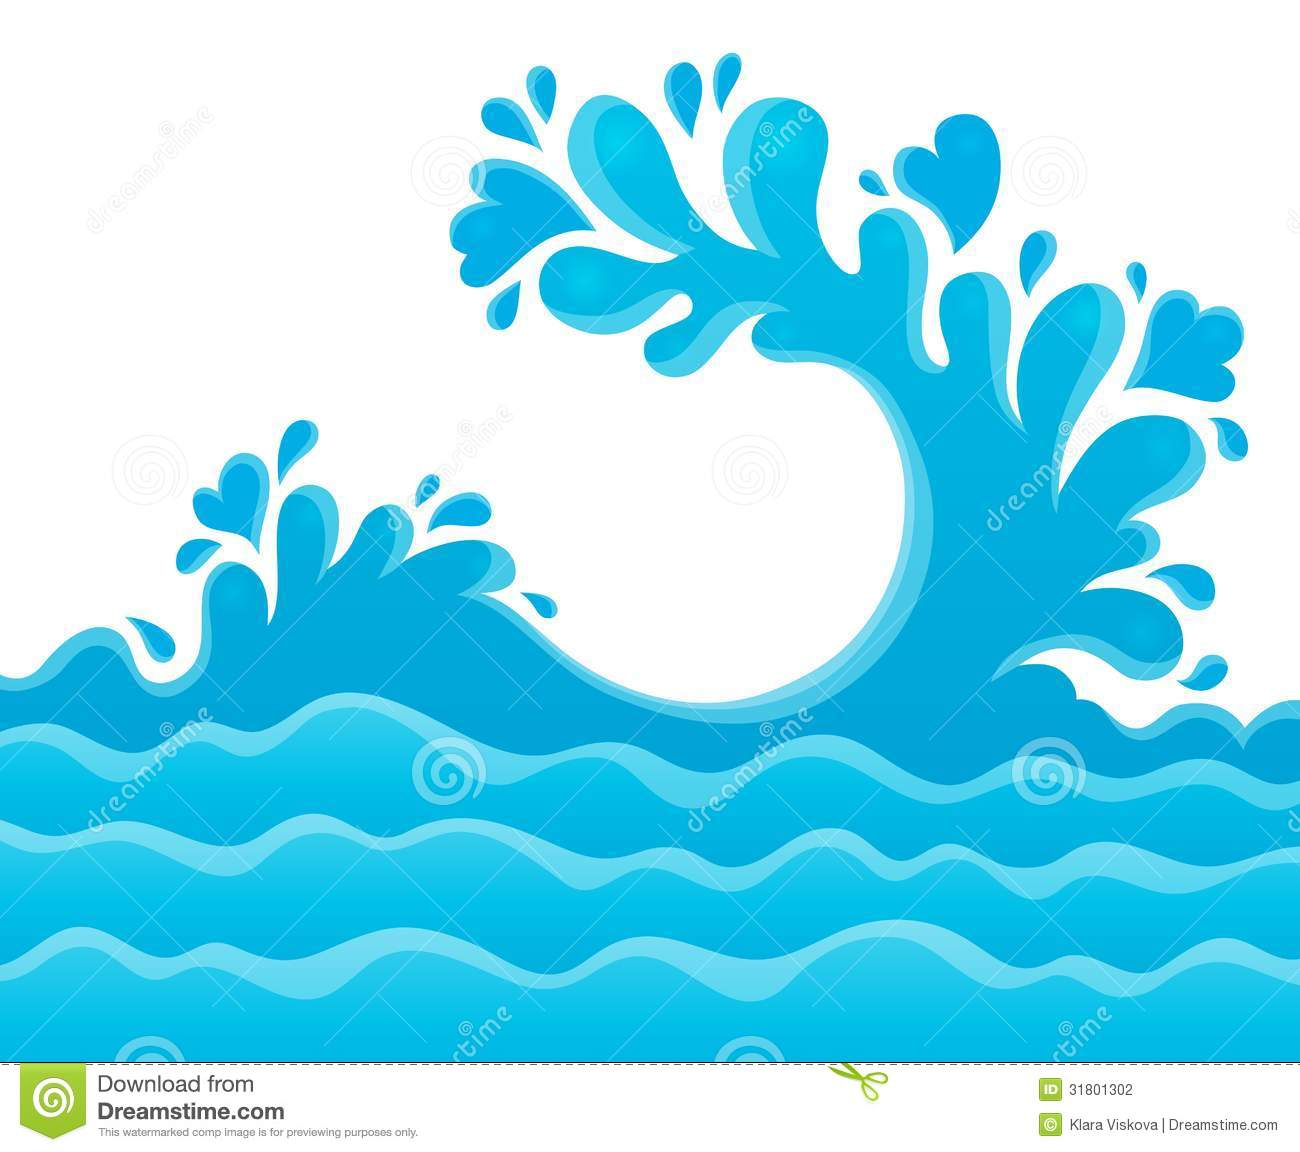 Water clipart #1, Download drawings